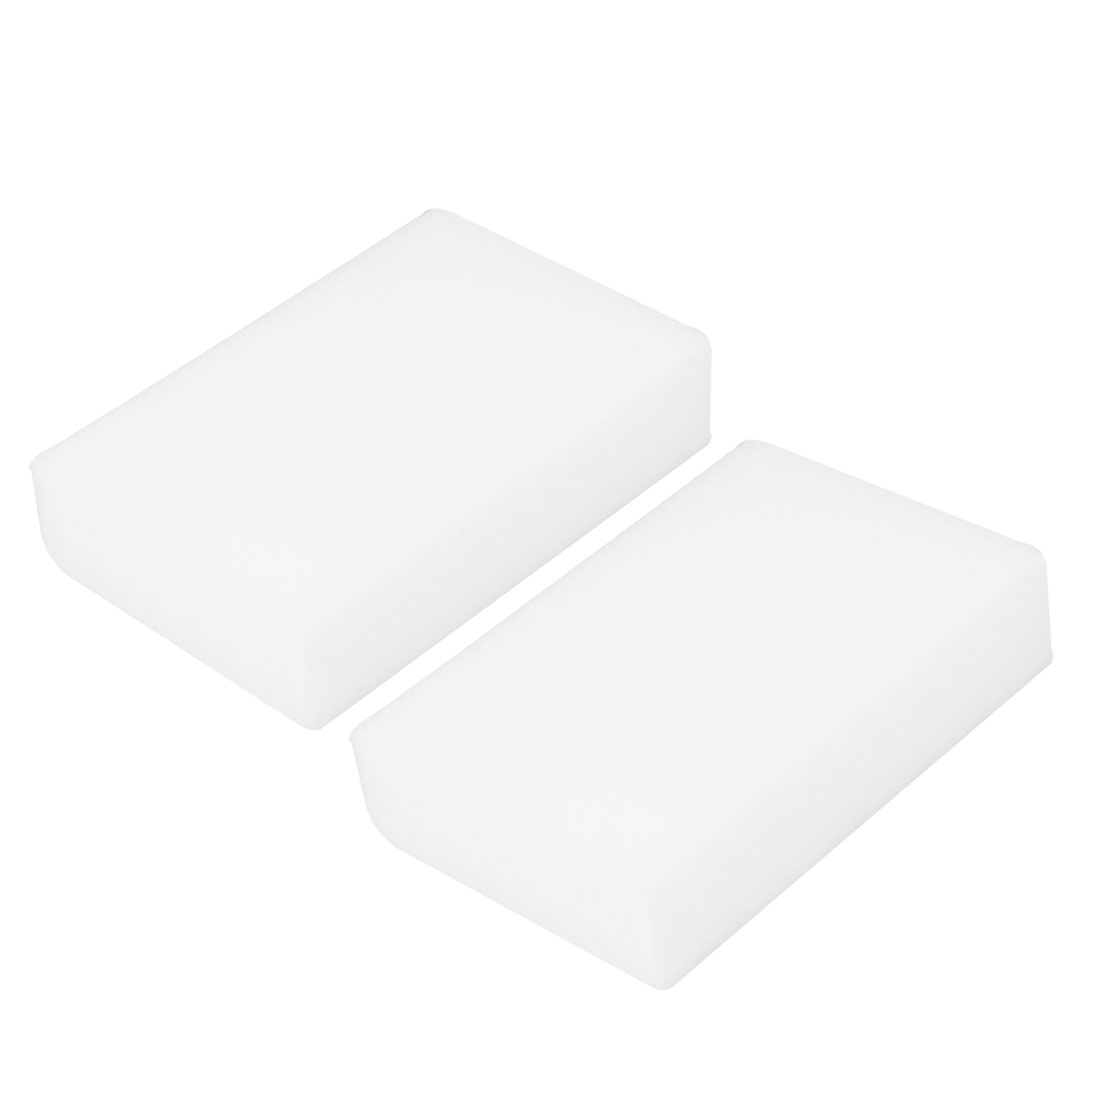 White Rectangular Pad Cleaning Sponge for Kitchen Products 2 Pcs